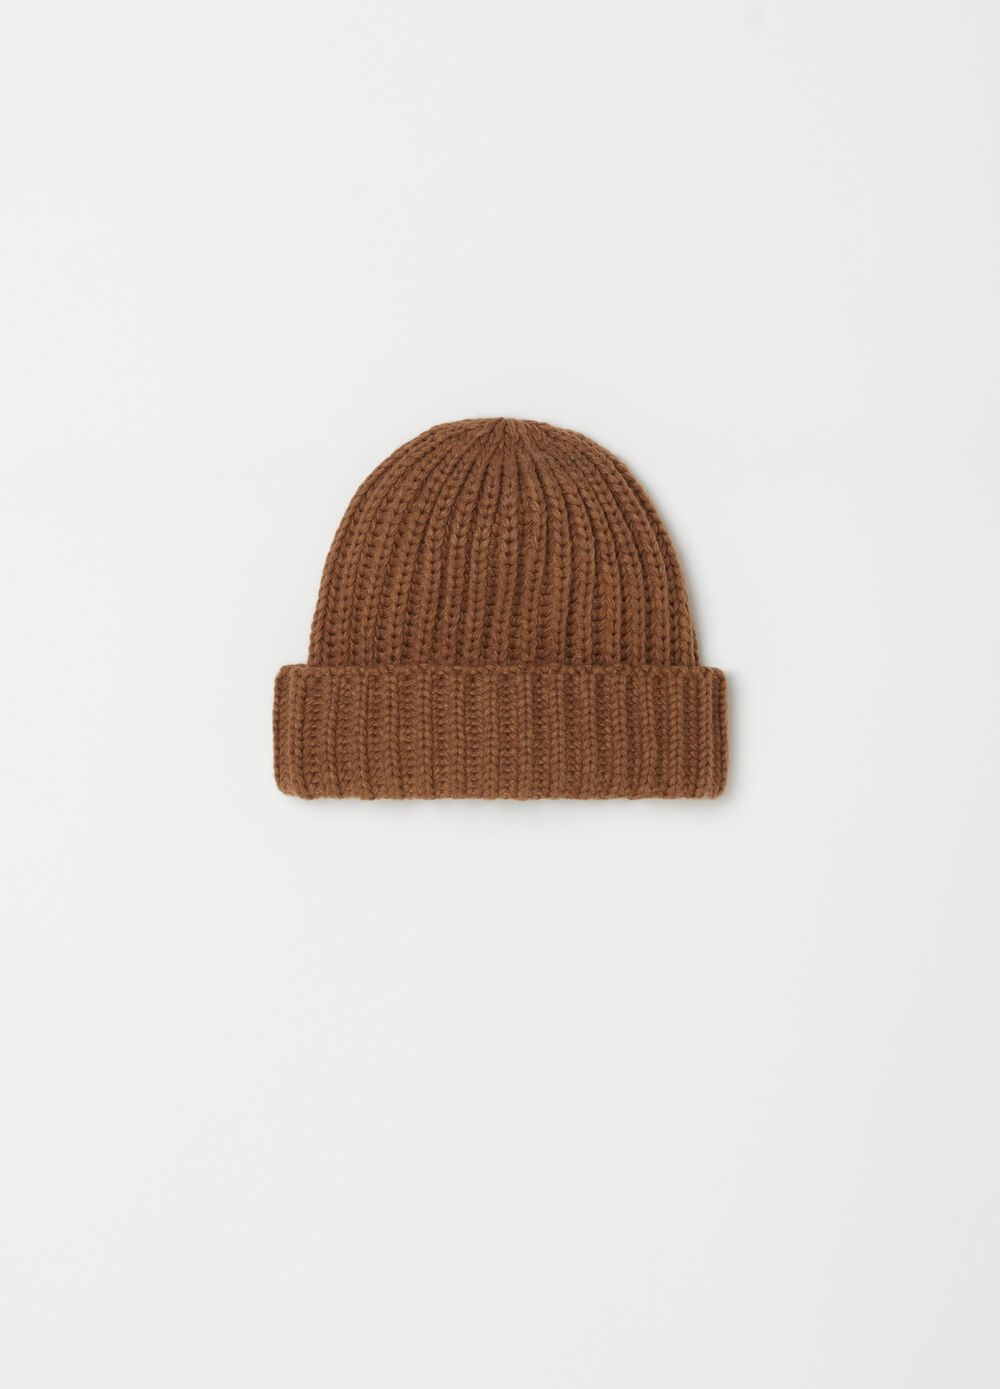 Solid colour hat with knitted design